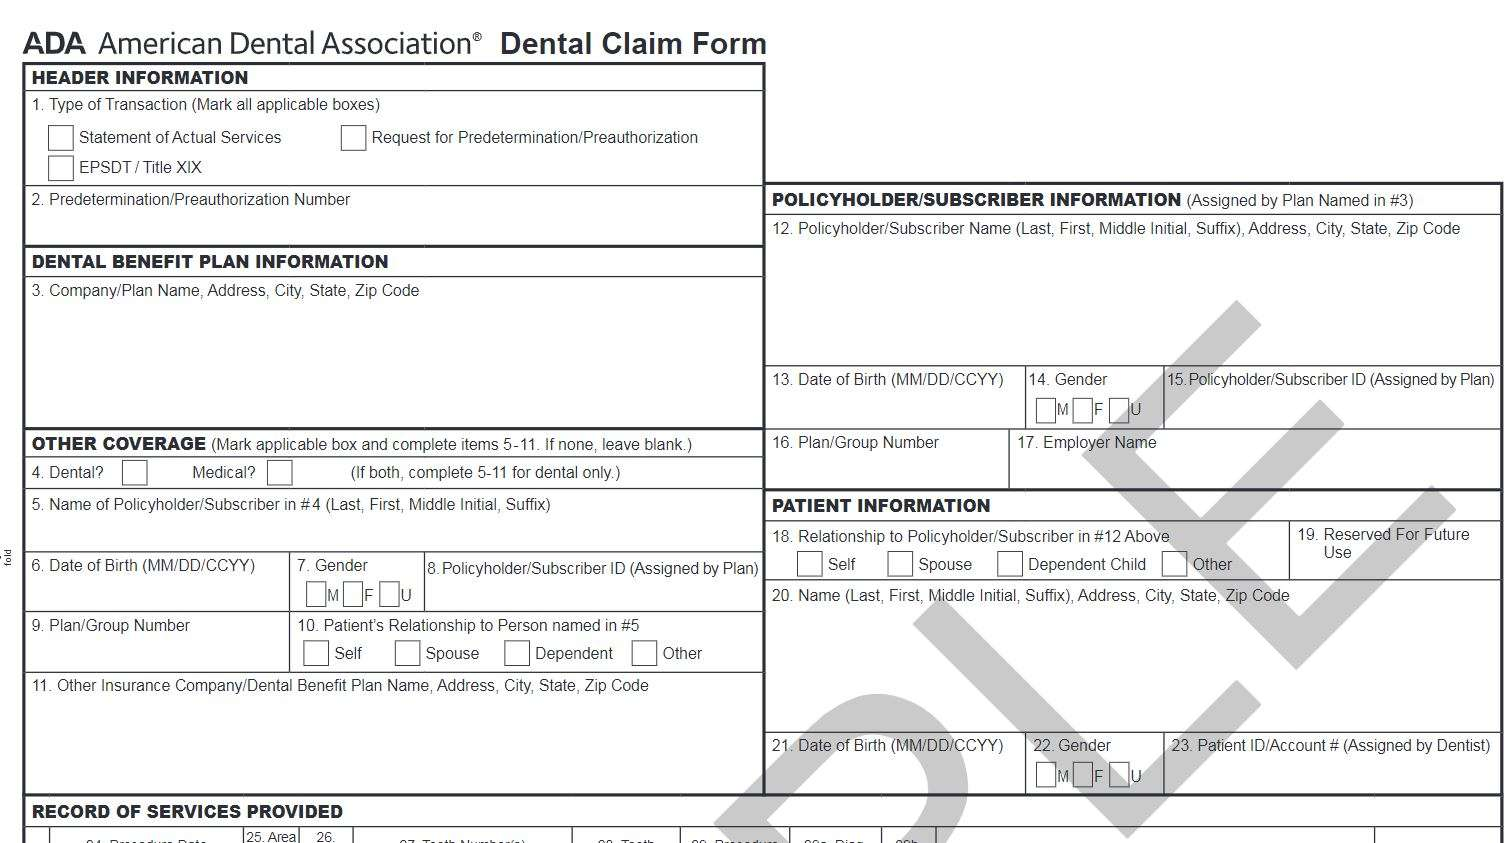 Dental Claims Reviewers  Settle Misclassification Suit for $3.4 million